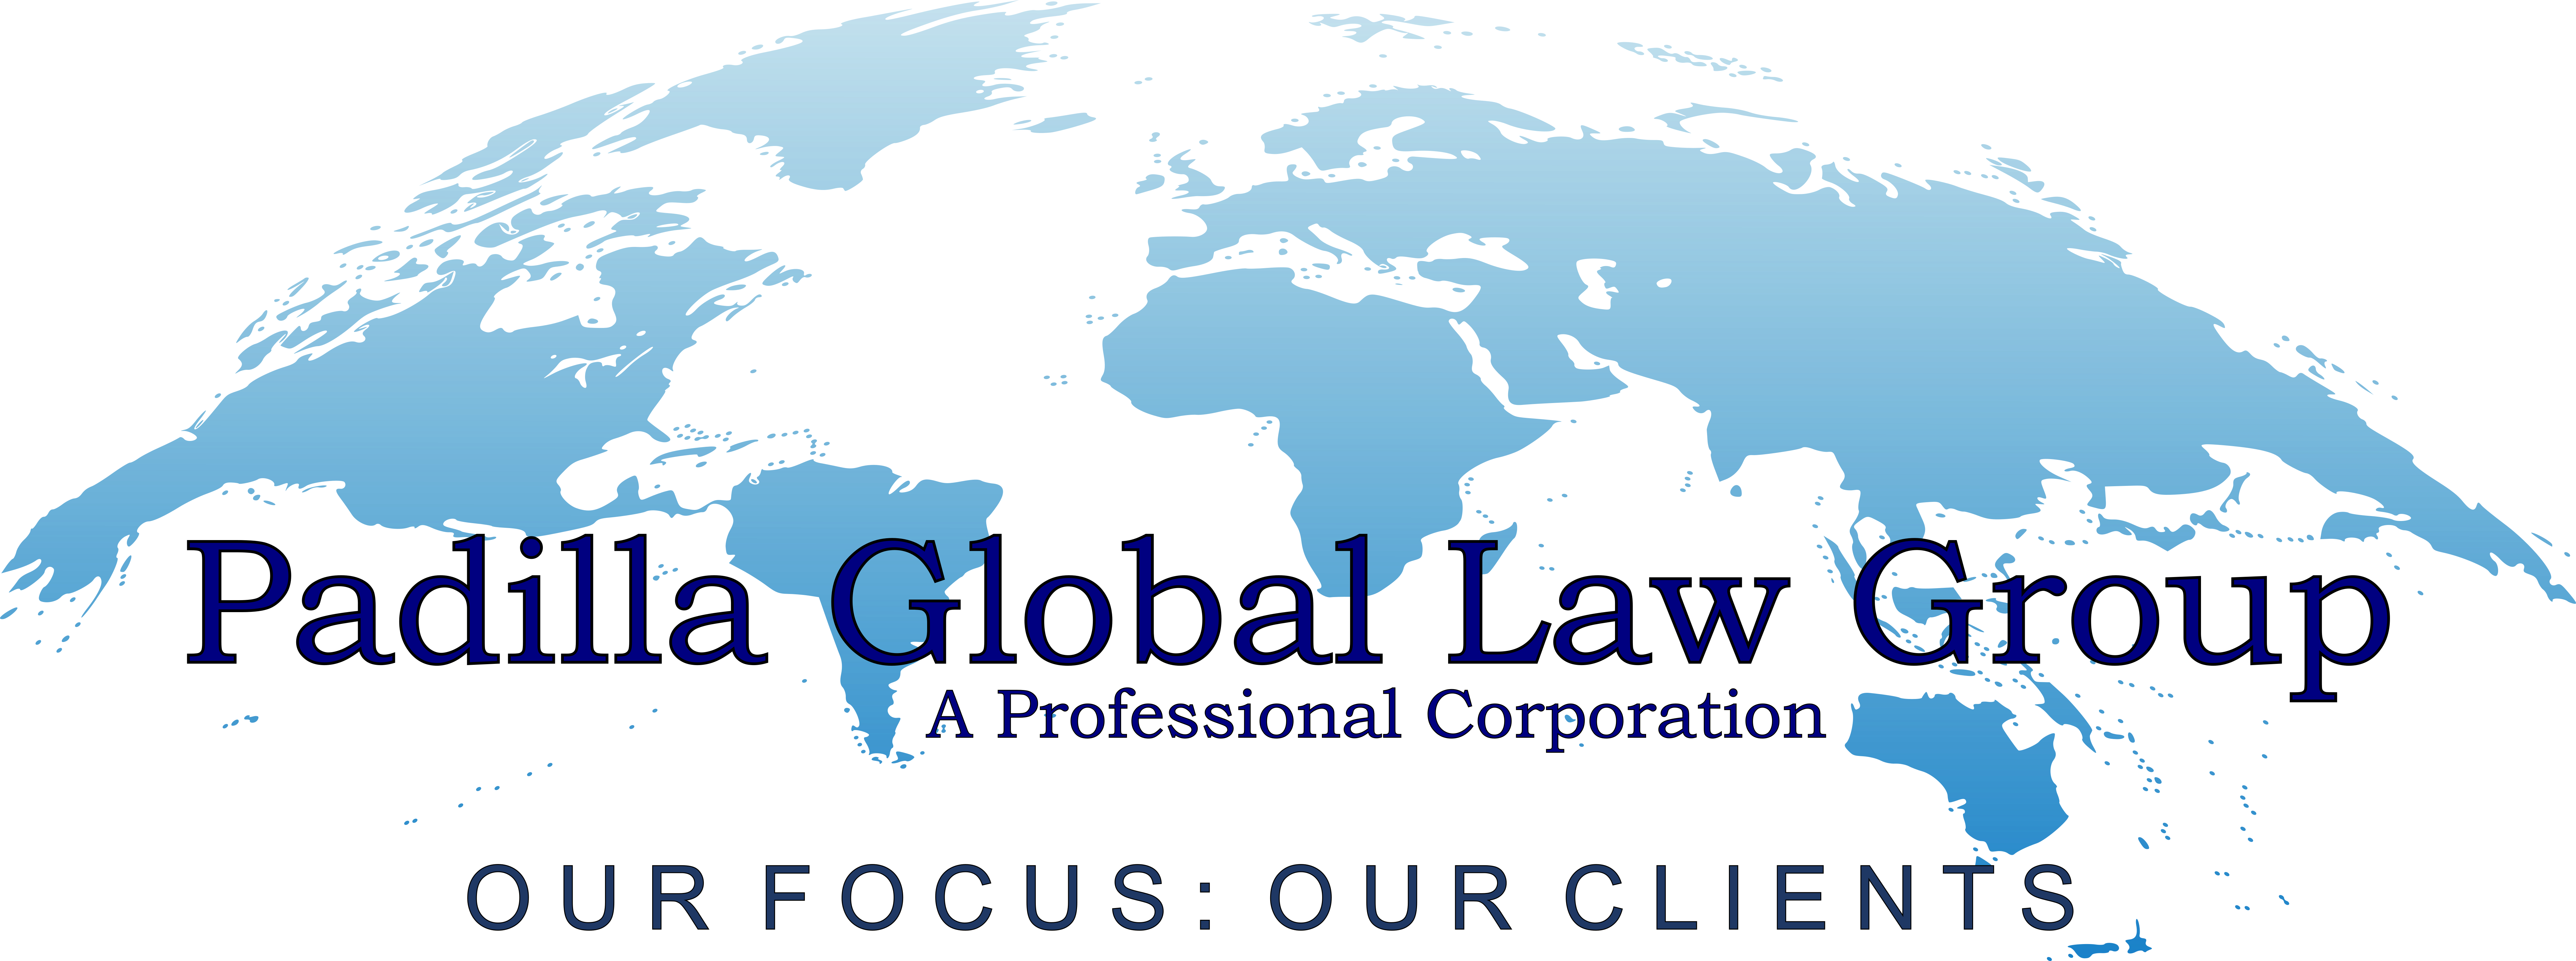 Padilla Global Law Group Logo, Immigration and Family Law